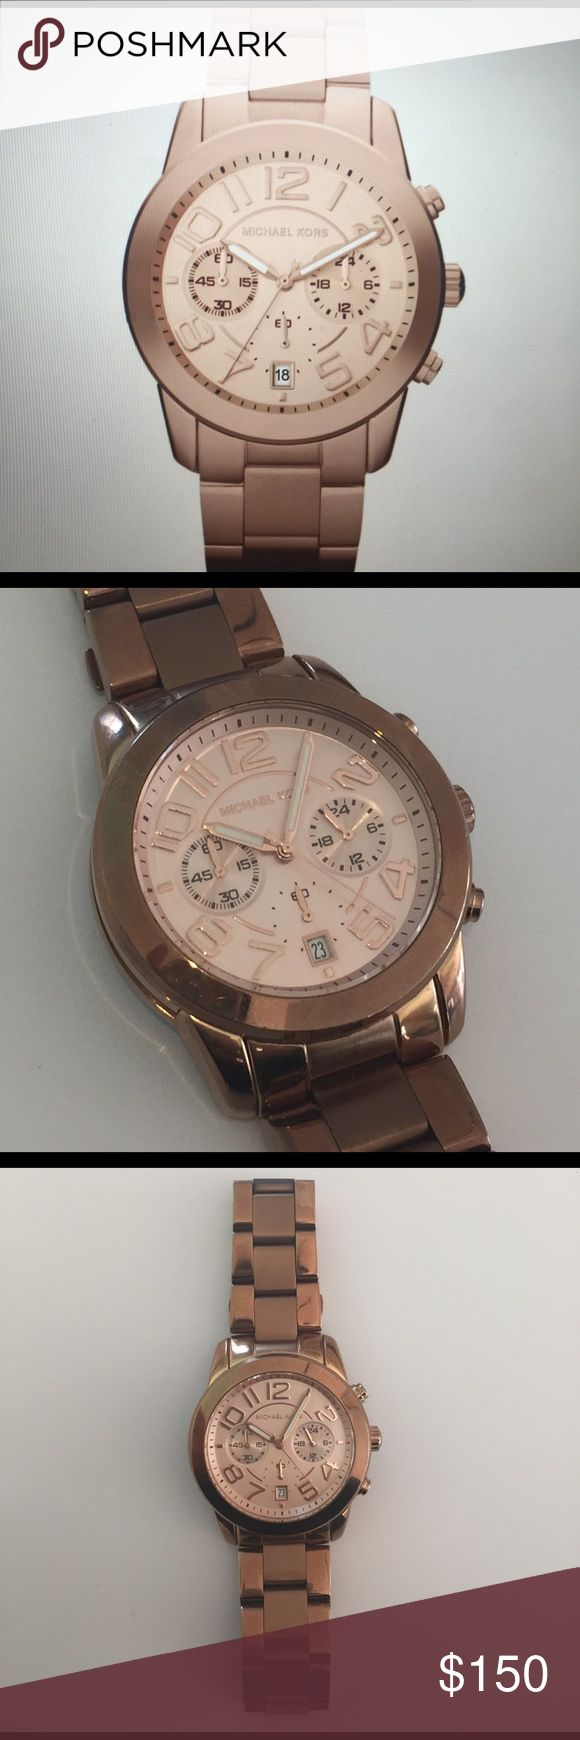 Michael Kors - Ladies Mercer Chronograph Watch Like new. Rose gold boyfriend watch. This watch is made from PVD Rose-Plated Steel. Water resistant. Michael Kors Accessories Watches